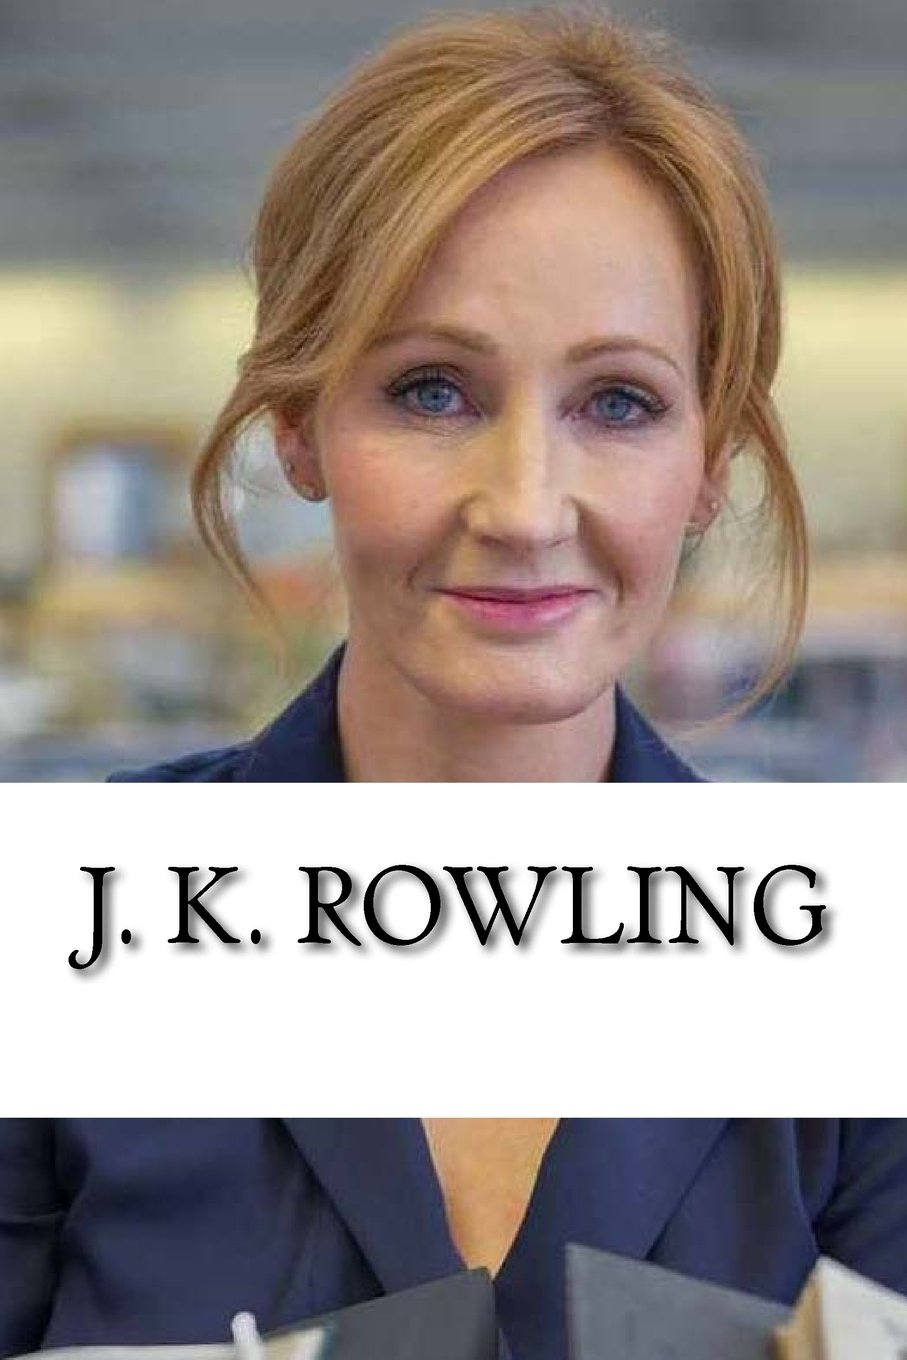 J K Rowling From Welfare To Billionaire A Biography Bowen Michelle 9781718695665 Amazon Com Books